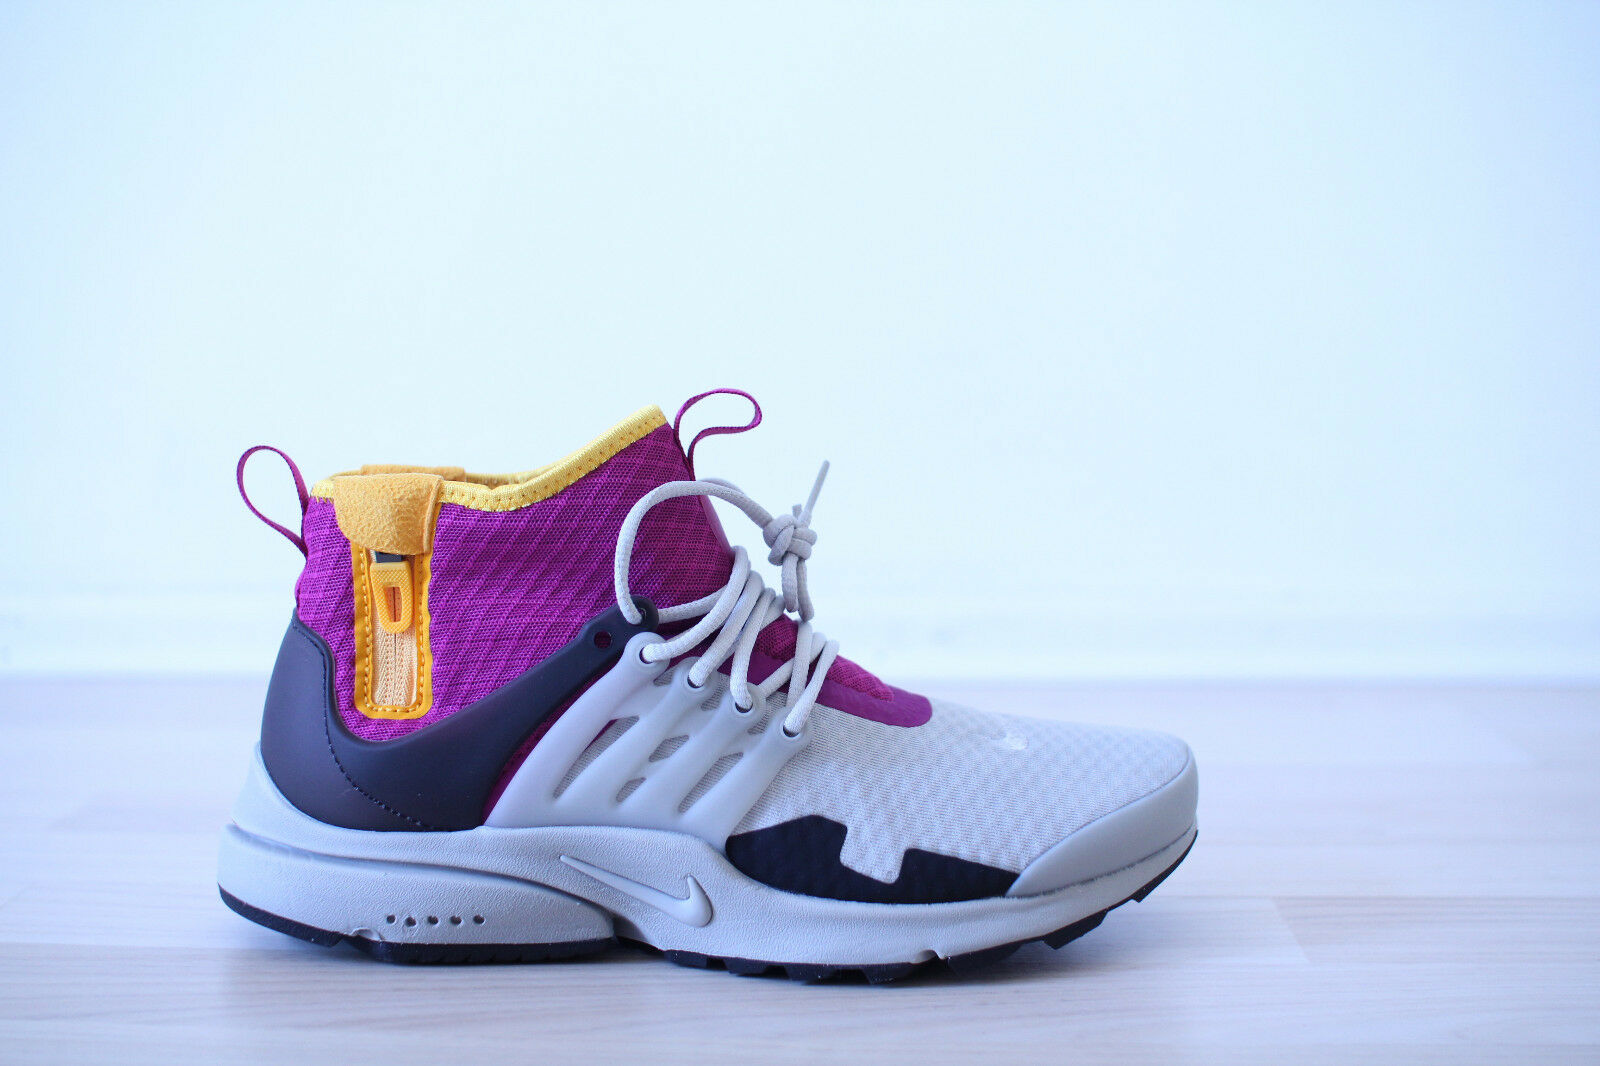 Nike Air Presto Mid SP Grau Gr. 40 UK 6 NEU & OVP